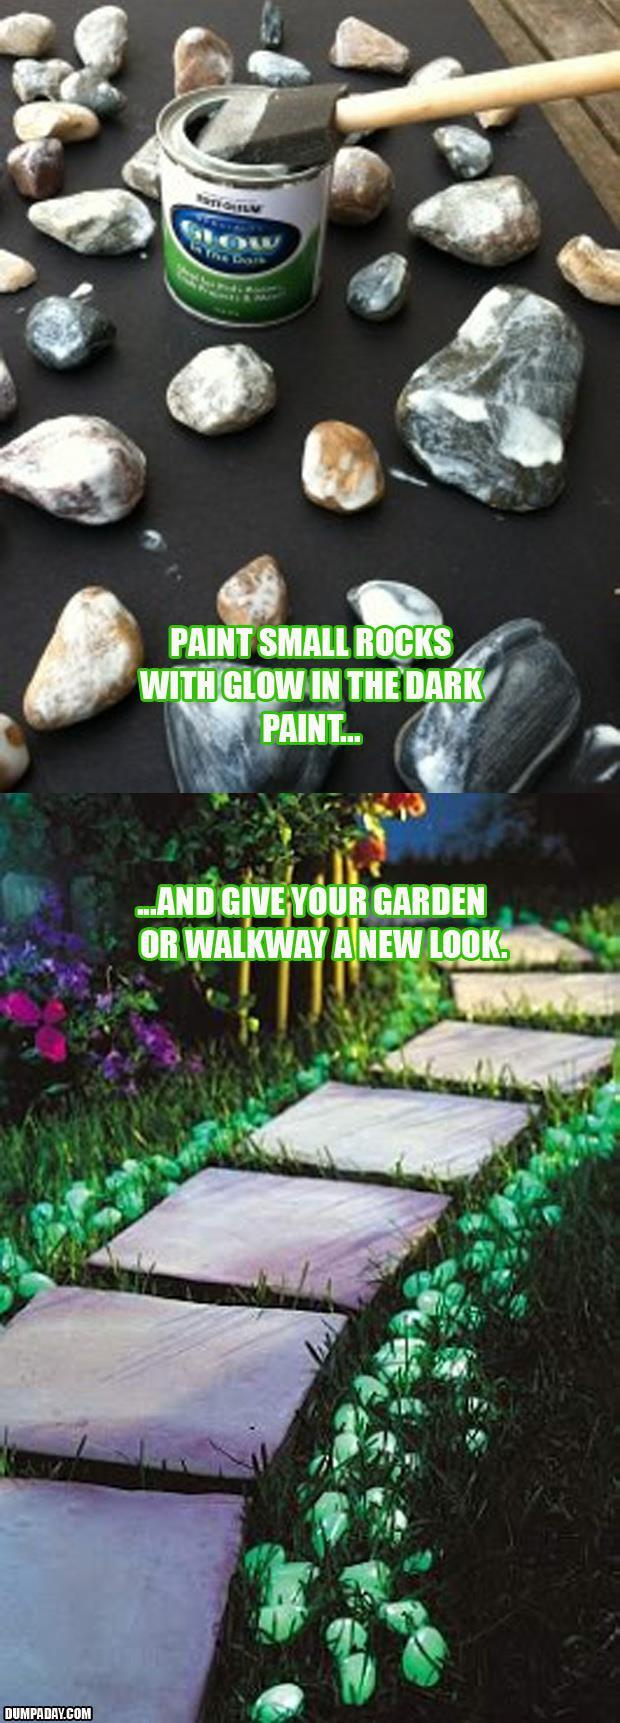 a glow in the dark garden rocks